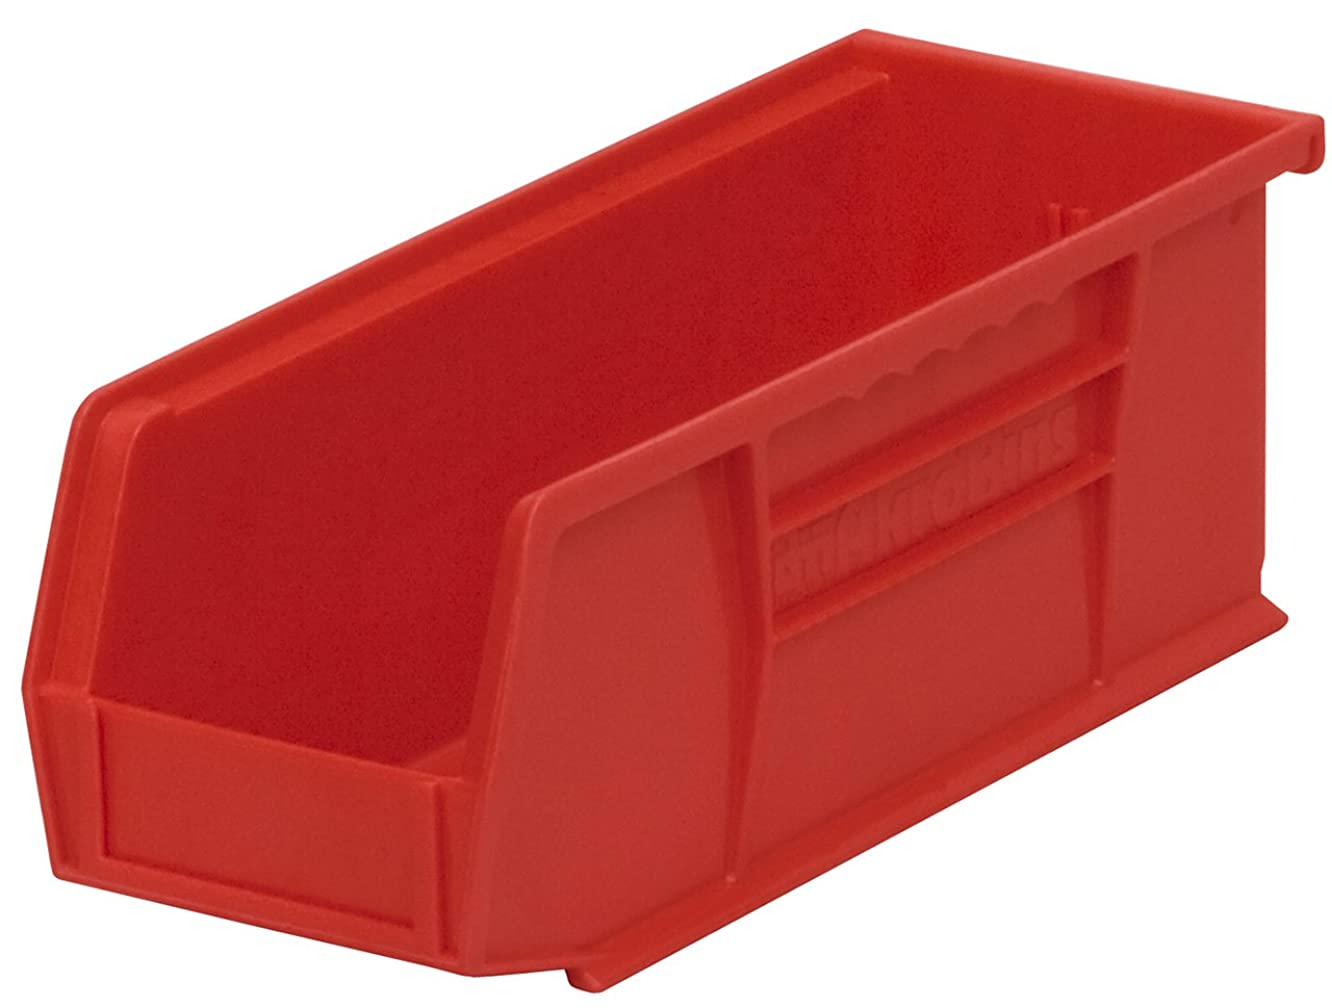 Akro-Mils 30224 Plastic Storage Stacking Hanging Akro Bin, 11-Inch by 4-Inch by 4-Inch, Red, Case of 12